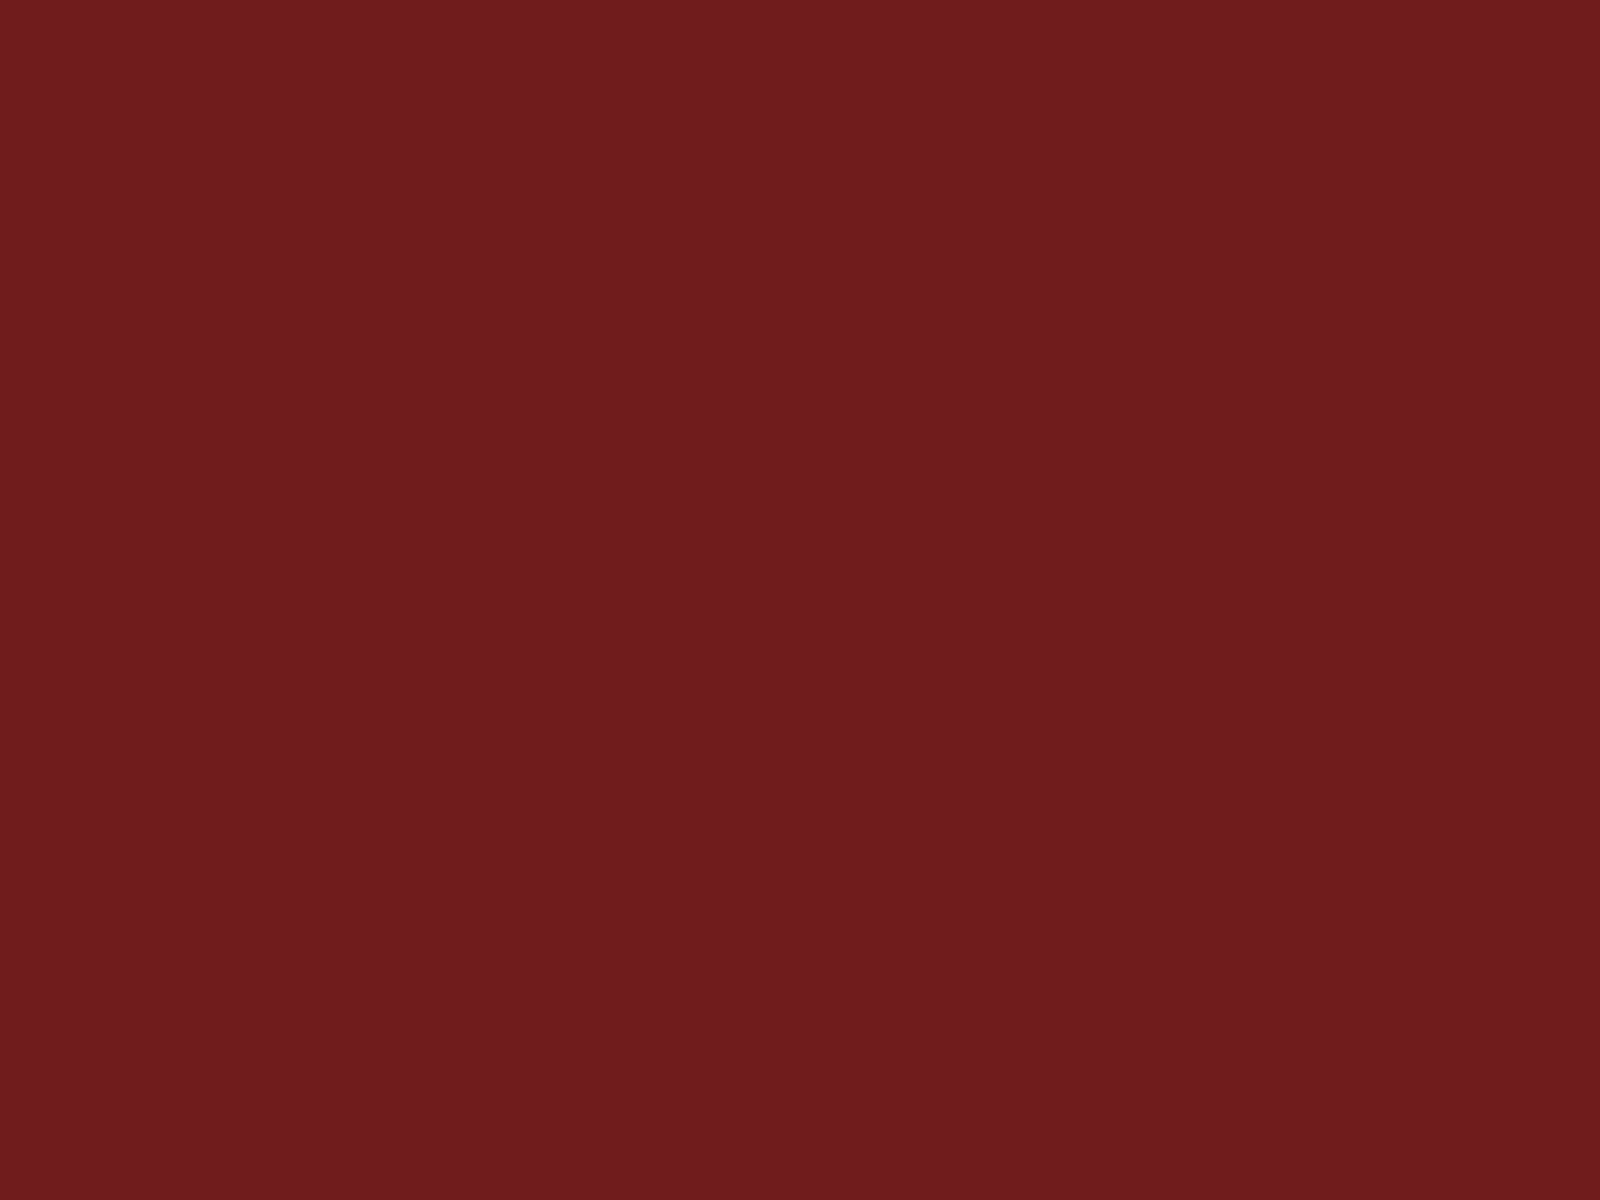 1600x1200 Prune Solid Color Background